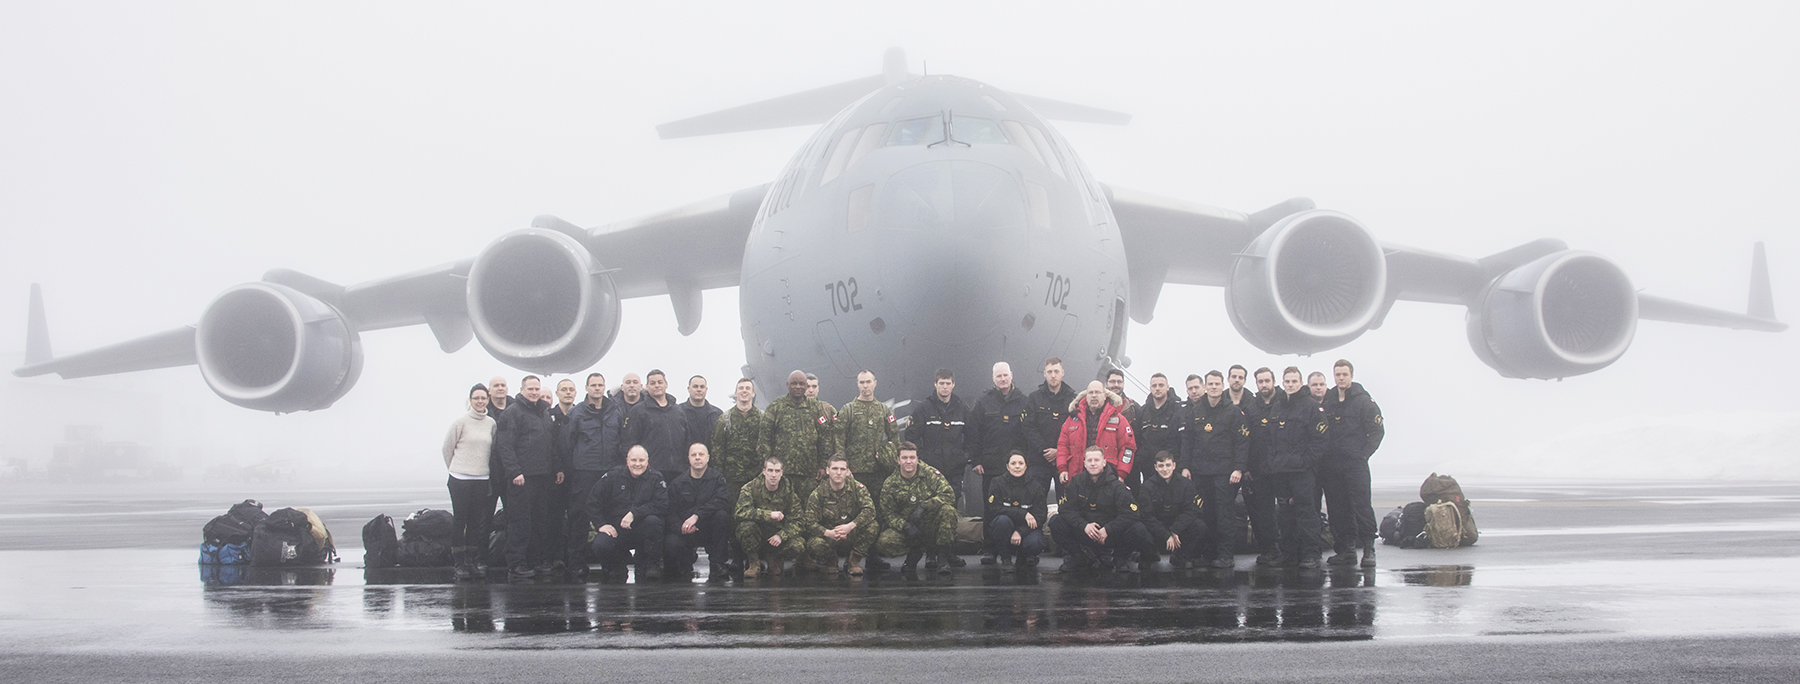 Canadian Armed Forces and Royal Canadian Mounted Police personnel gather for a photograph before boarding a CC-177 Globemaster aircraft, in Halifax, Nova Scotia, for the flight to Resolute Bay, Nunavut, on February 25, 2017, for Operation Nunalivut. PHOTO: Corporal Gabrielle DesRochers, is09-2017-0002-004